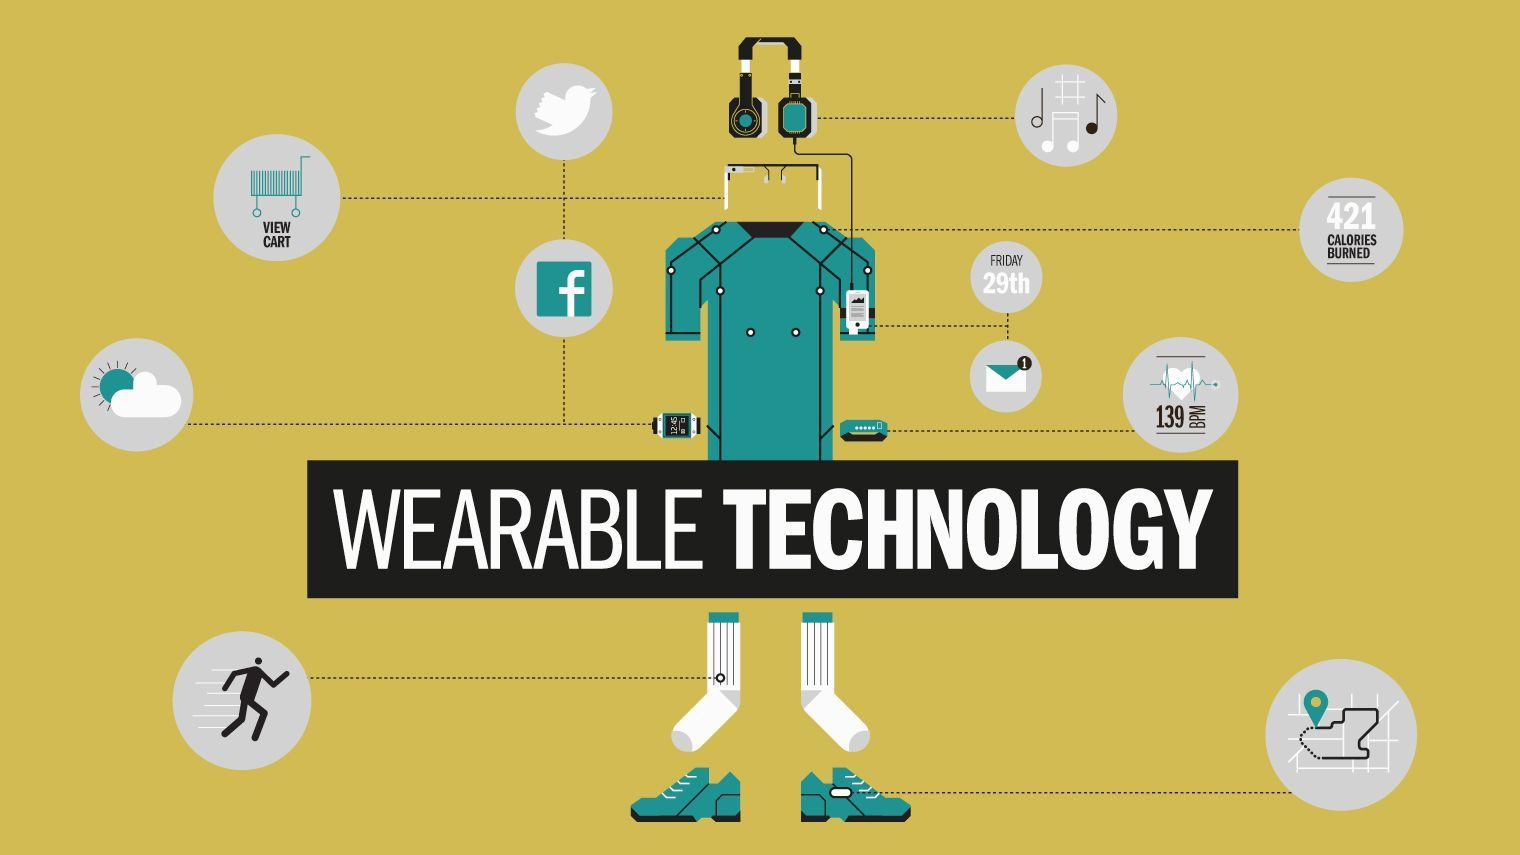 Wearable technology - separating fact from science fiction